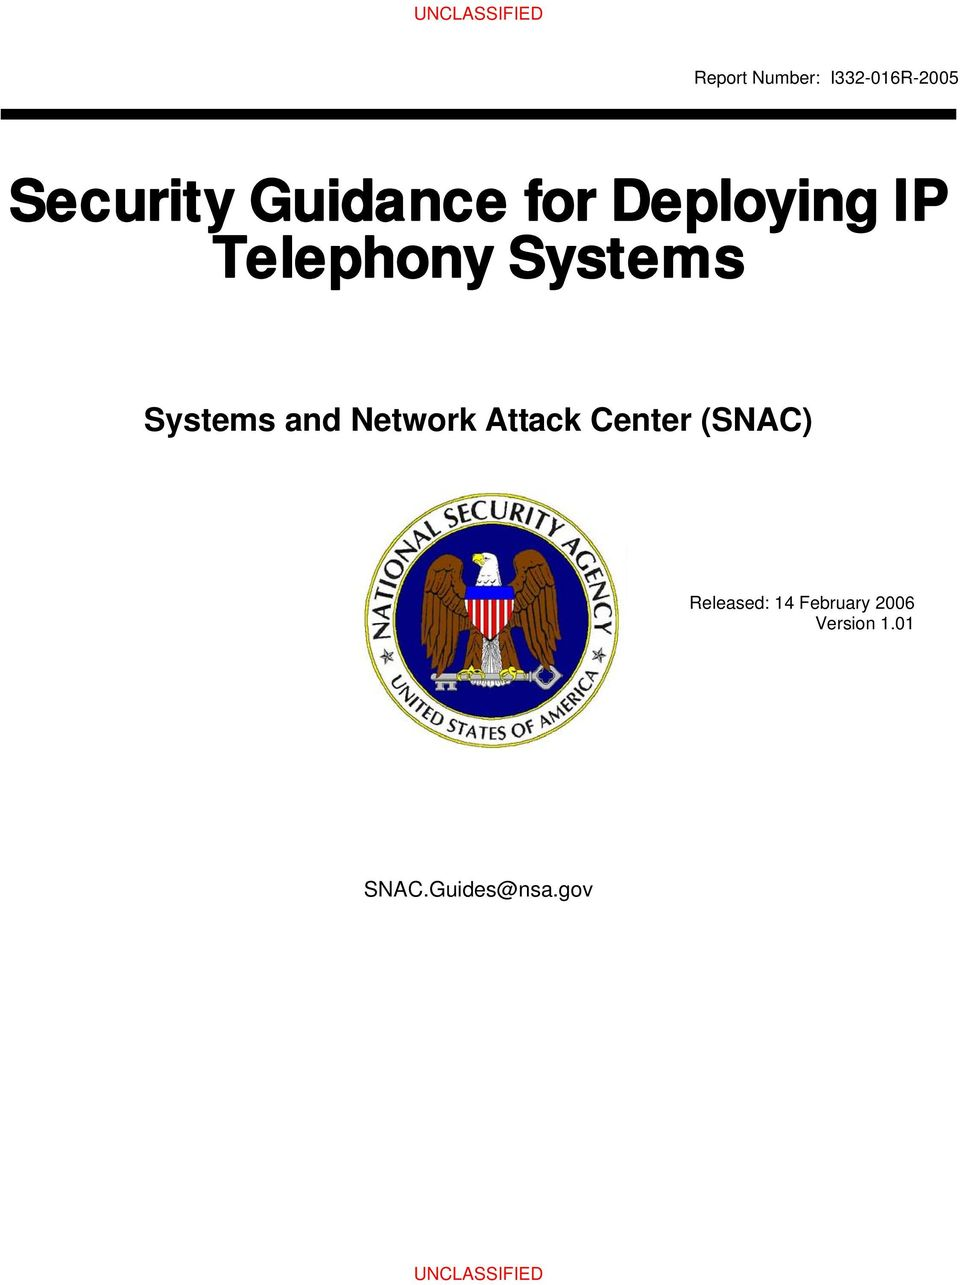 Systems and Network Attack Center (SNAC)